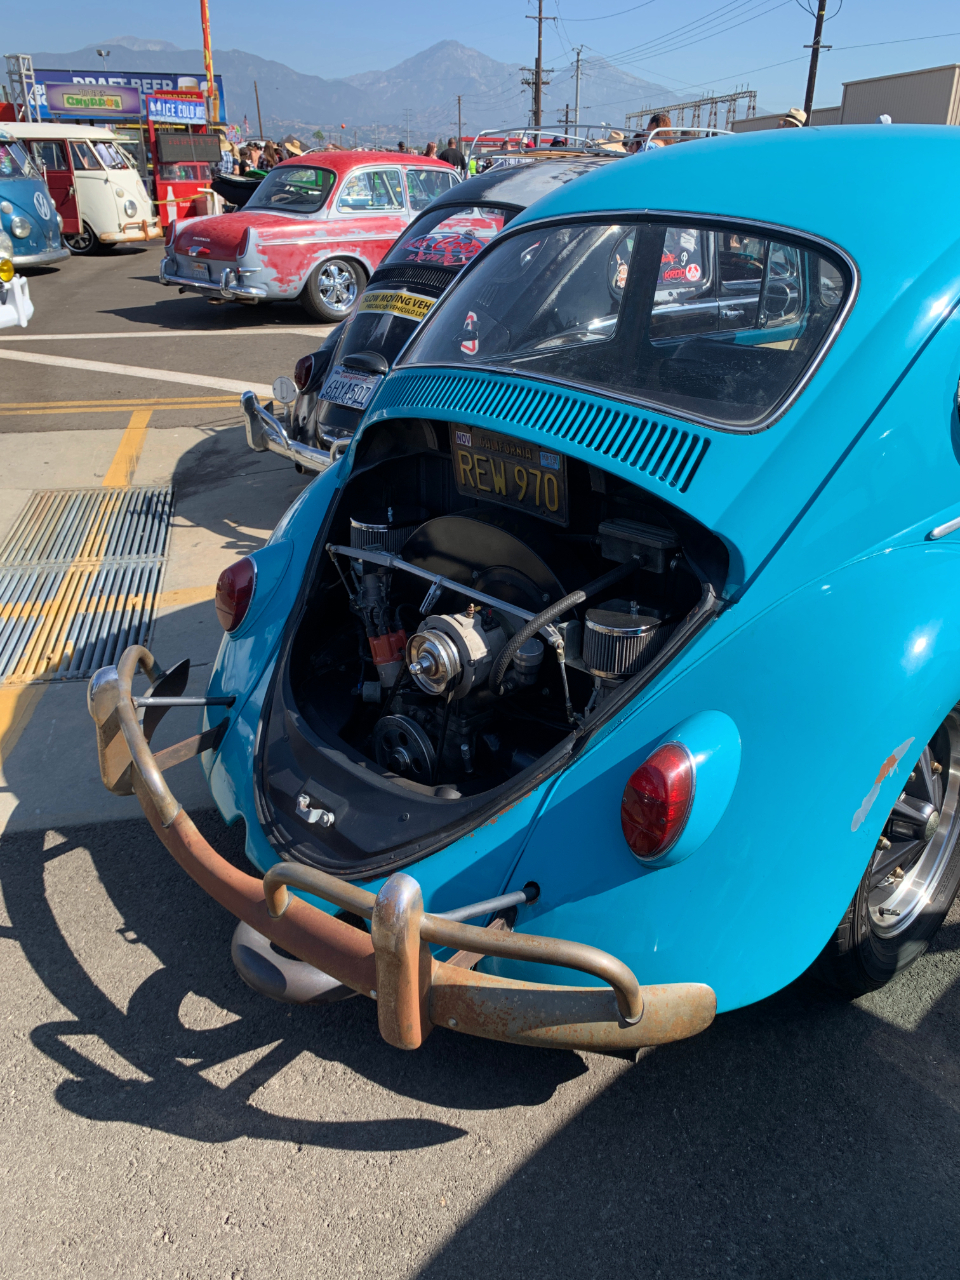 1966 VW Bug Engine Compartment